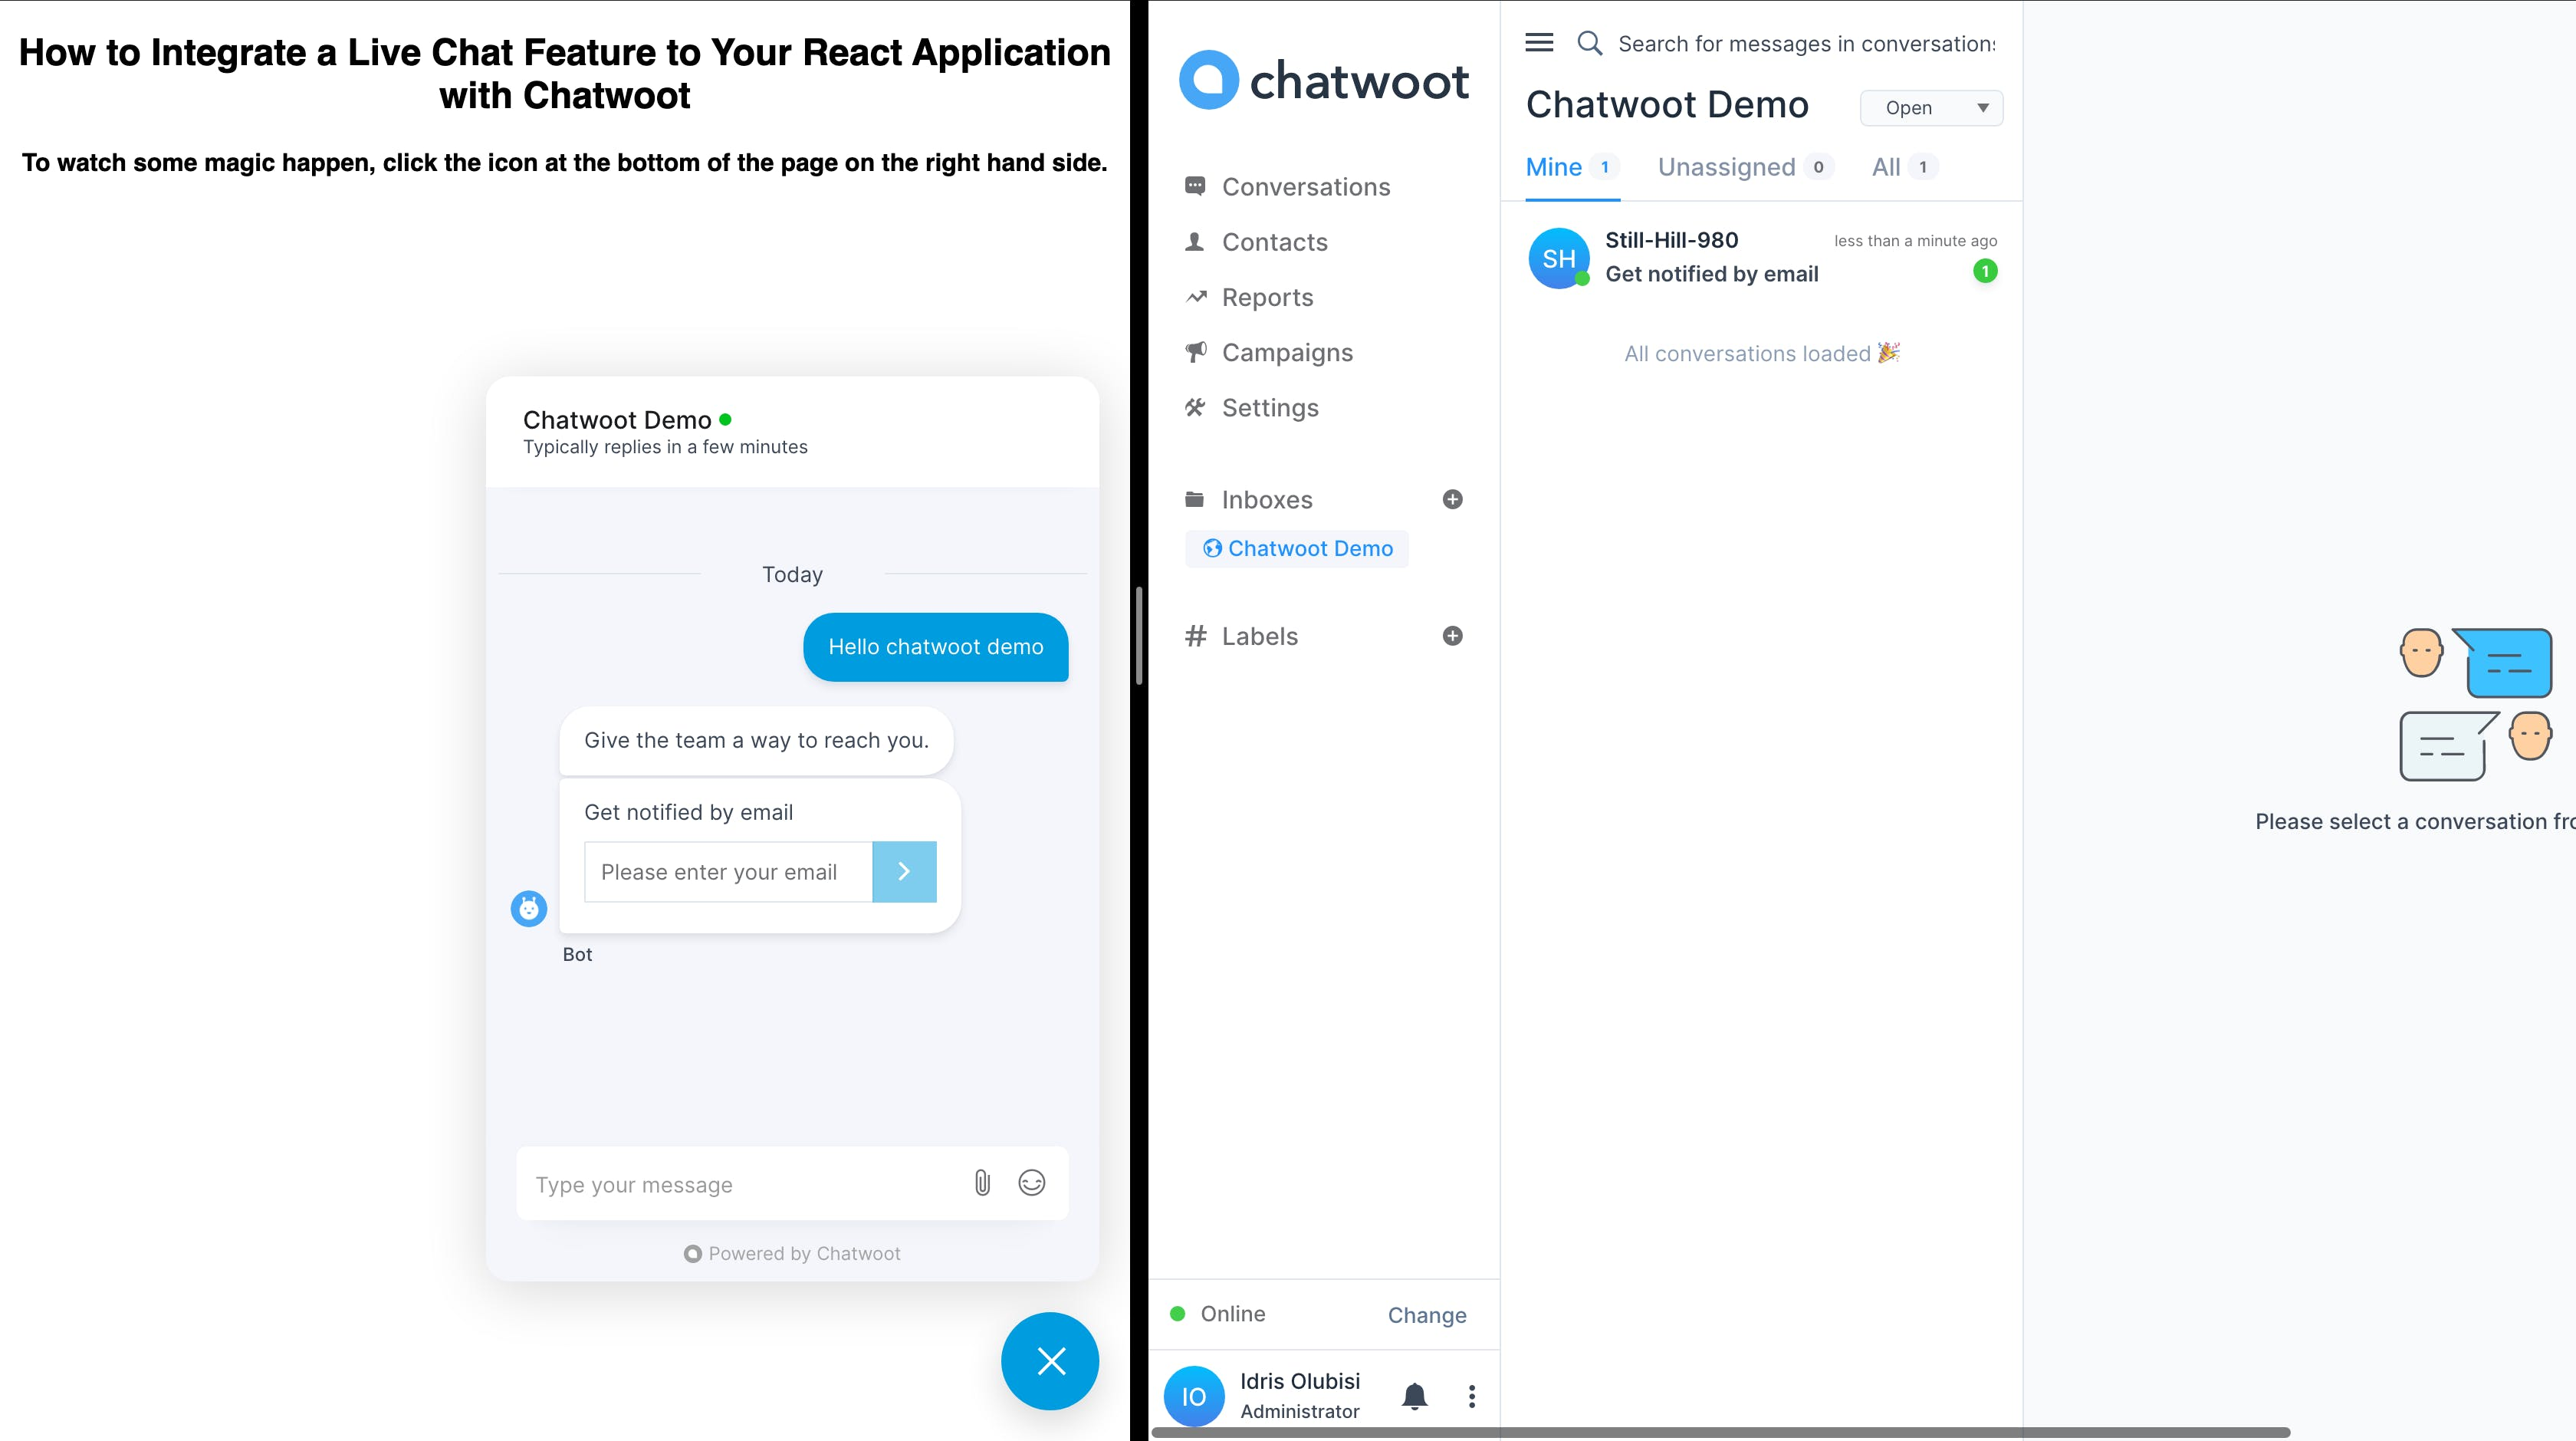 Chatwoot chat